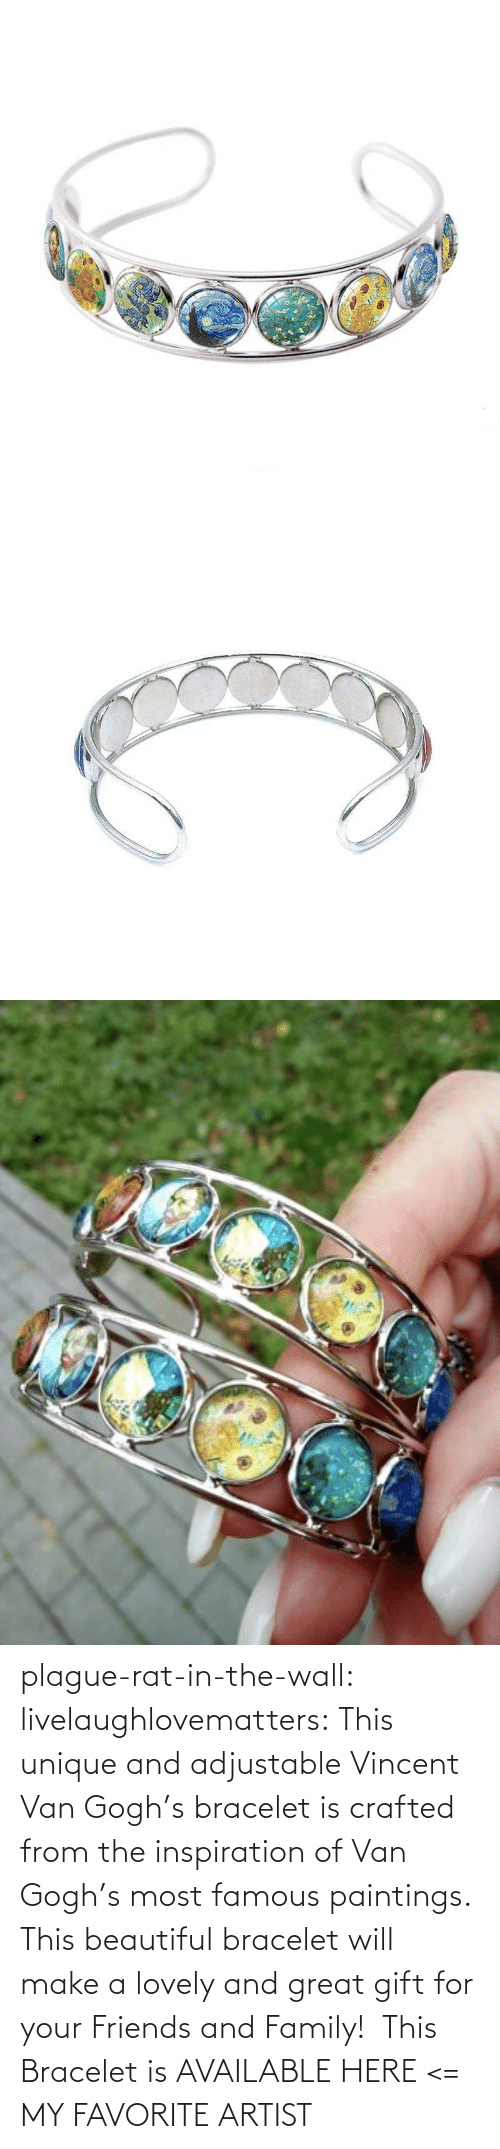 famous: plague-rat-in-the-wall:  livelaughlovematters: This unique and adjustable Vincent Van Gogh's bracelet is crafted from the inspiration of Van Gogh's most famous paintings. This beautiful bracelet will make a lovely and great gift for your Friends and Family!  This Bracelet is AVAILABLE HERE <=  MY FAVORITE ARTIST